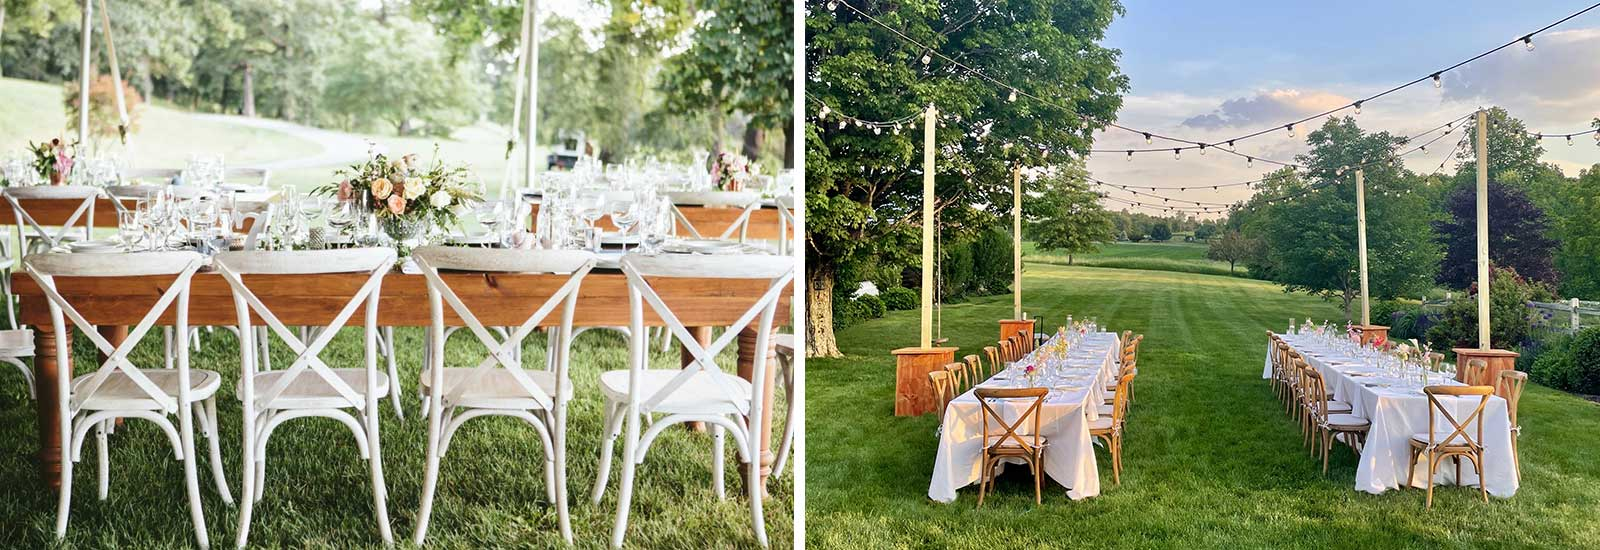 Canopy Tent Rentals in Dutchess County